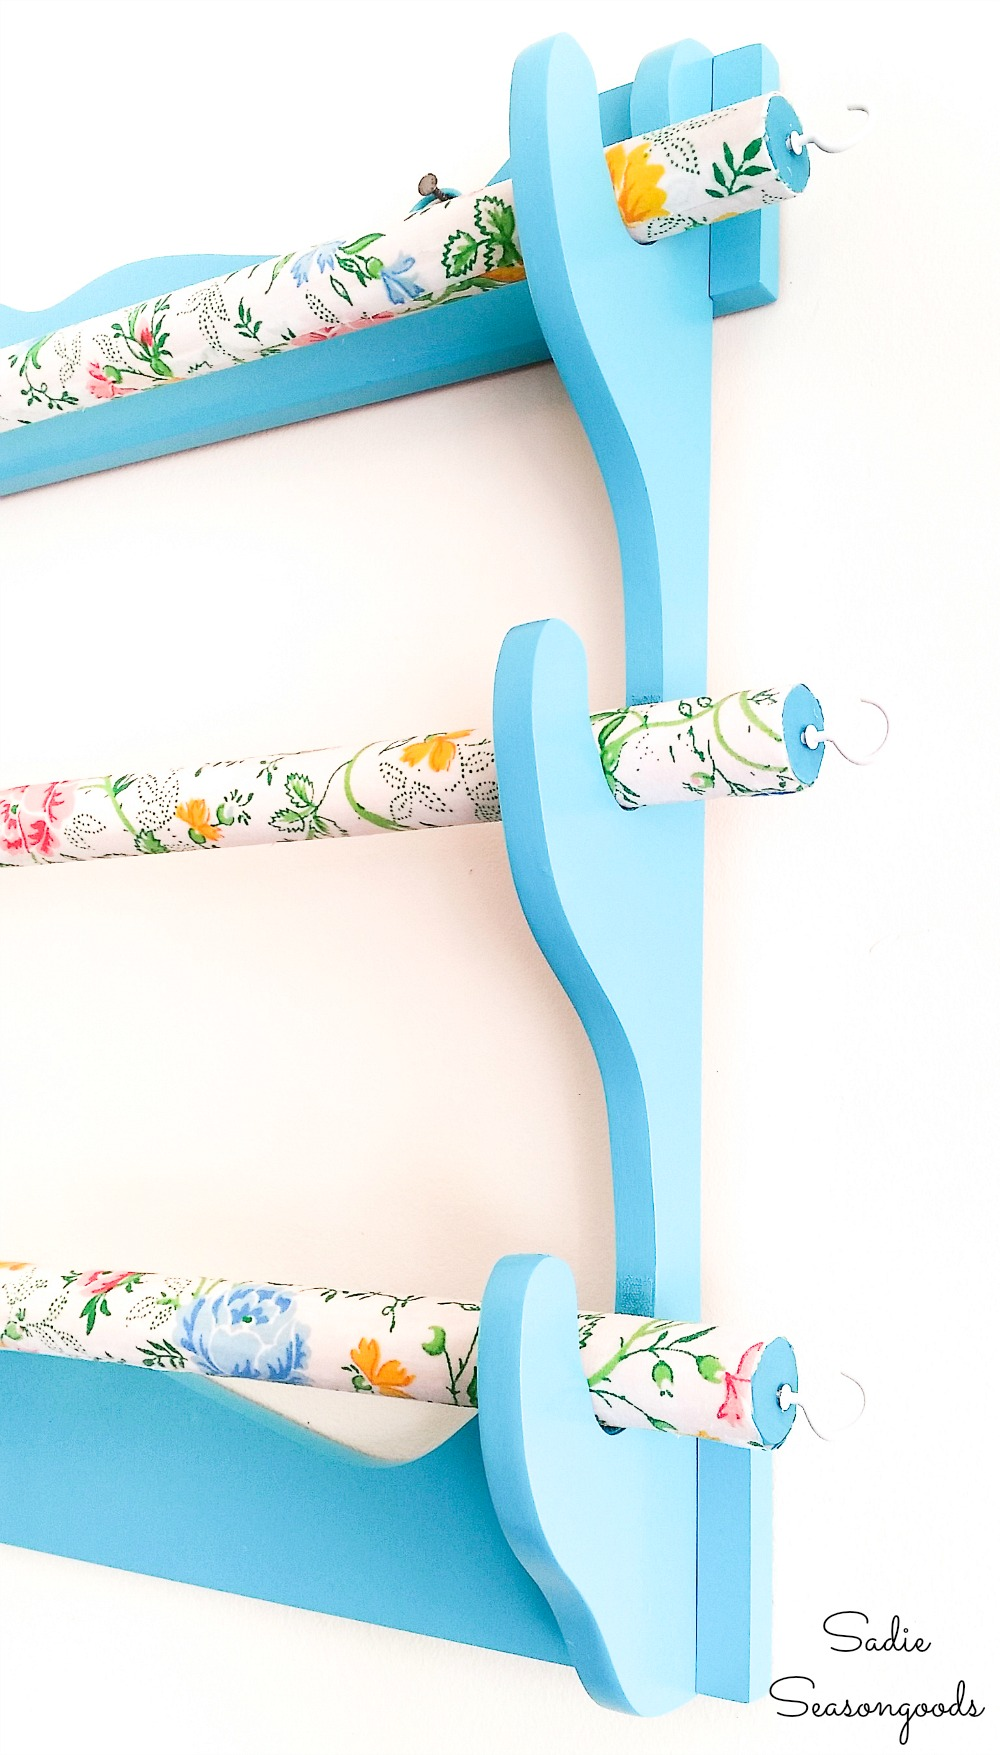 Cup hooks on the ends of a fabric organizer for fabric scraps